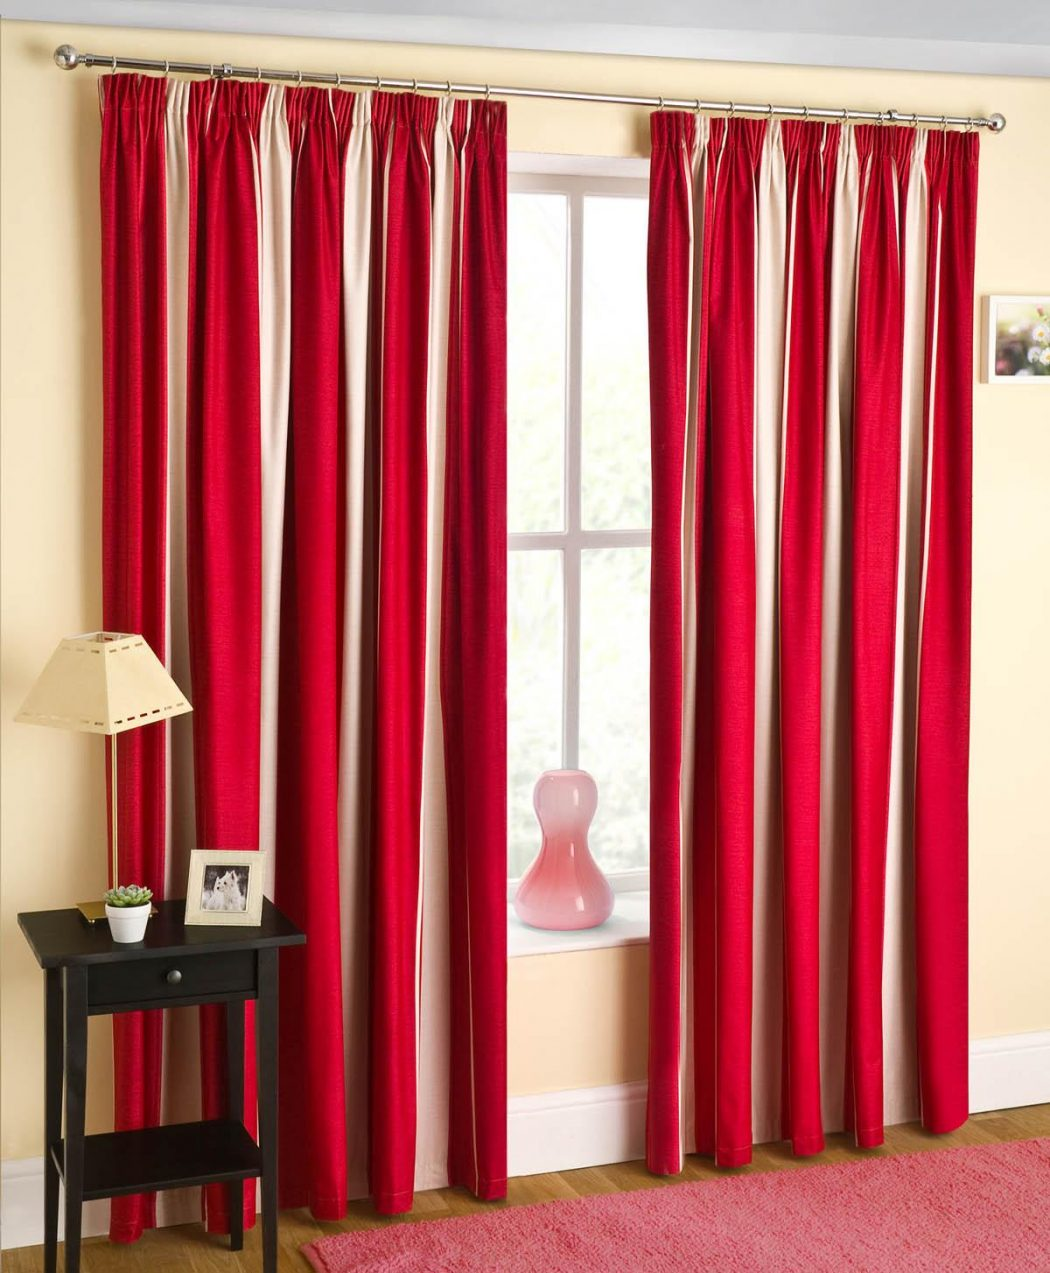 TWILIGHT-RED 20+ Hottest Curtain Design Ideas for 2020